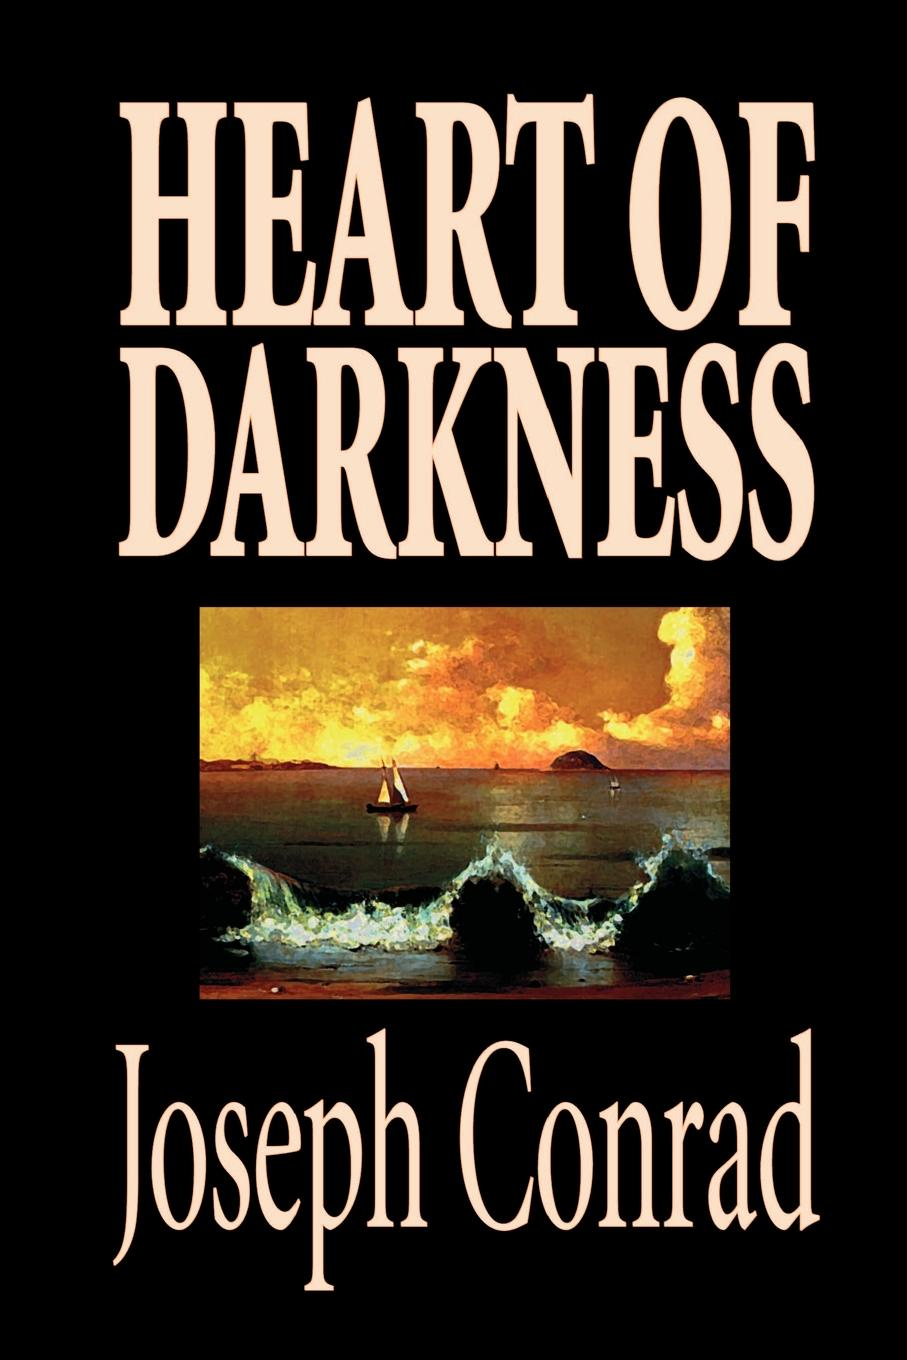 Joseph Conrad Heart of Darkness by Joseph Conrad, Fiction, Classics, Literary joseph lowe the present state of england